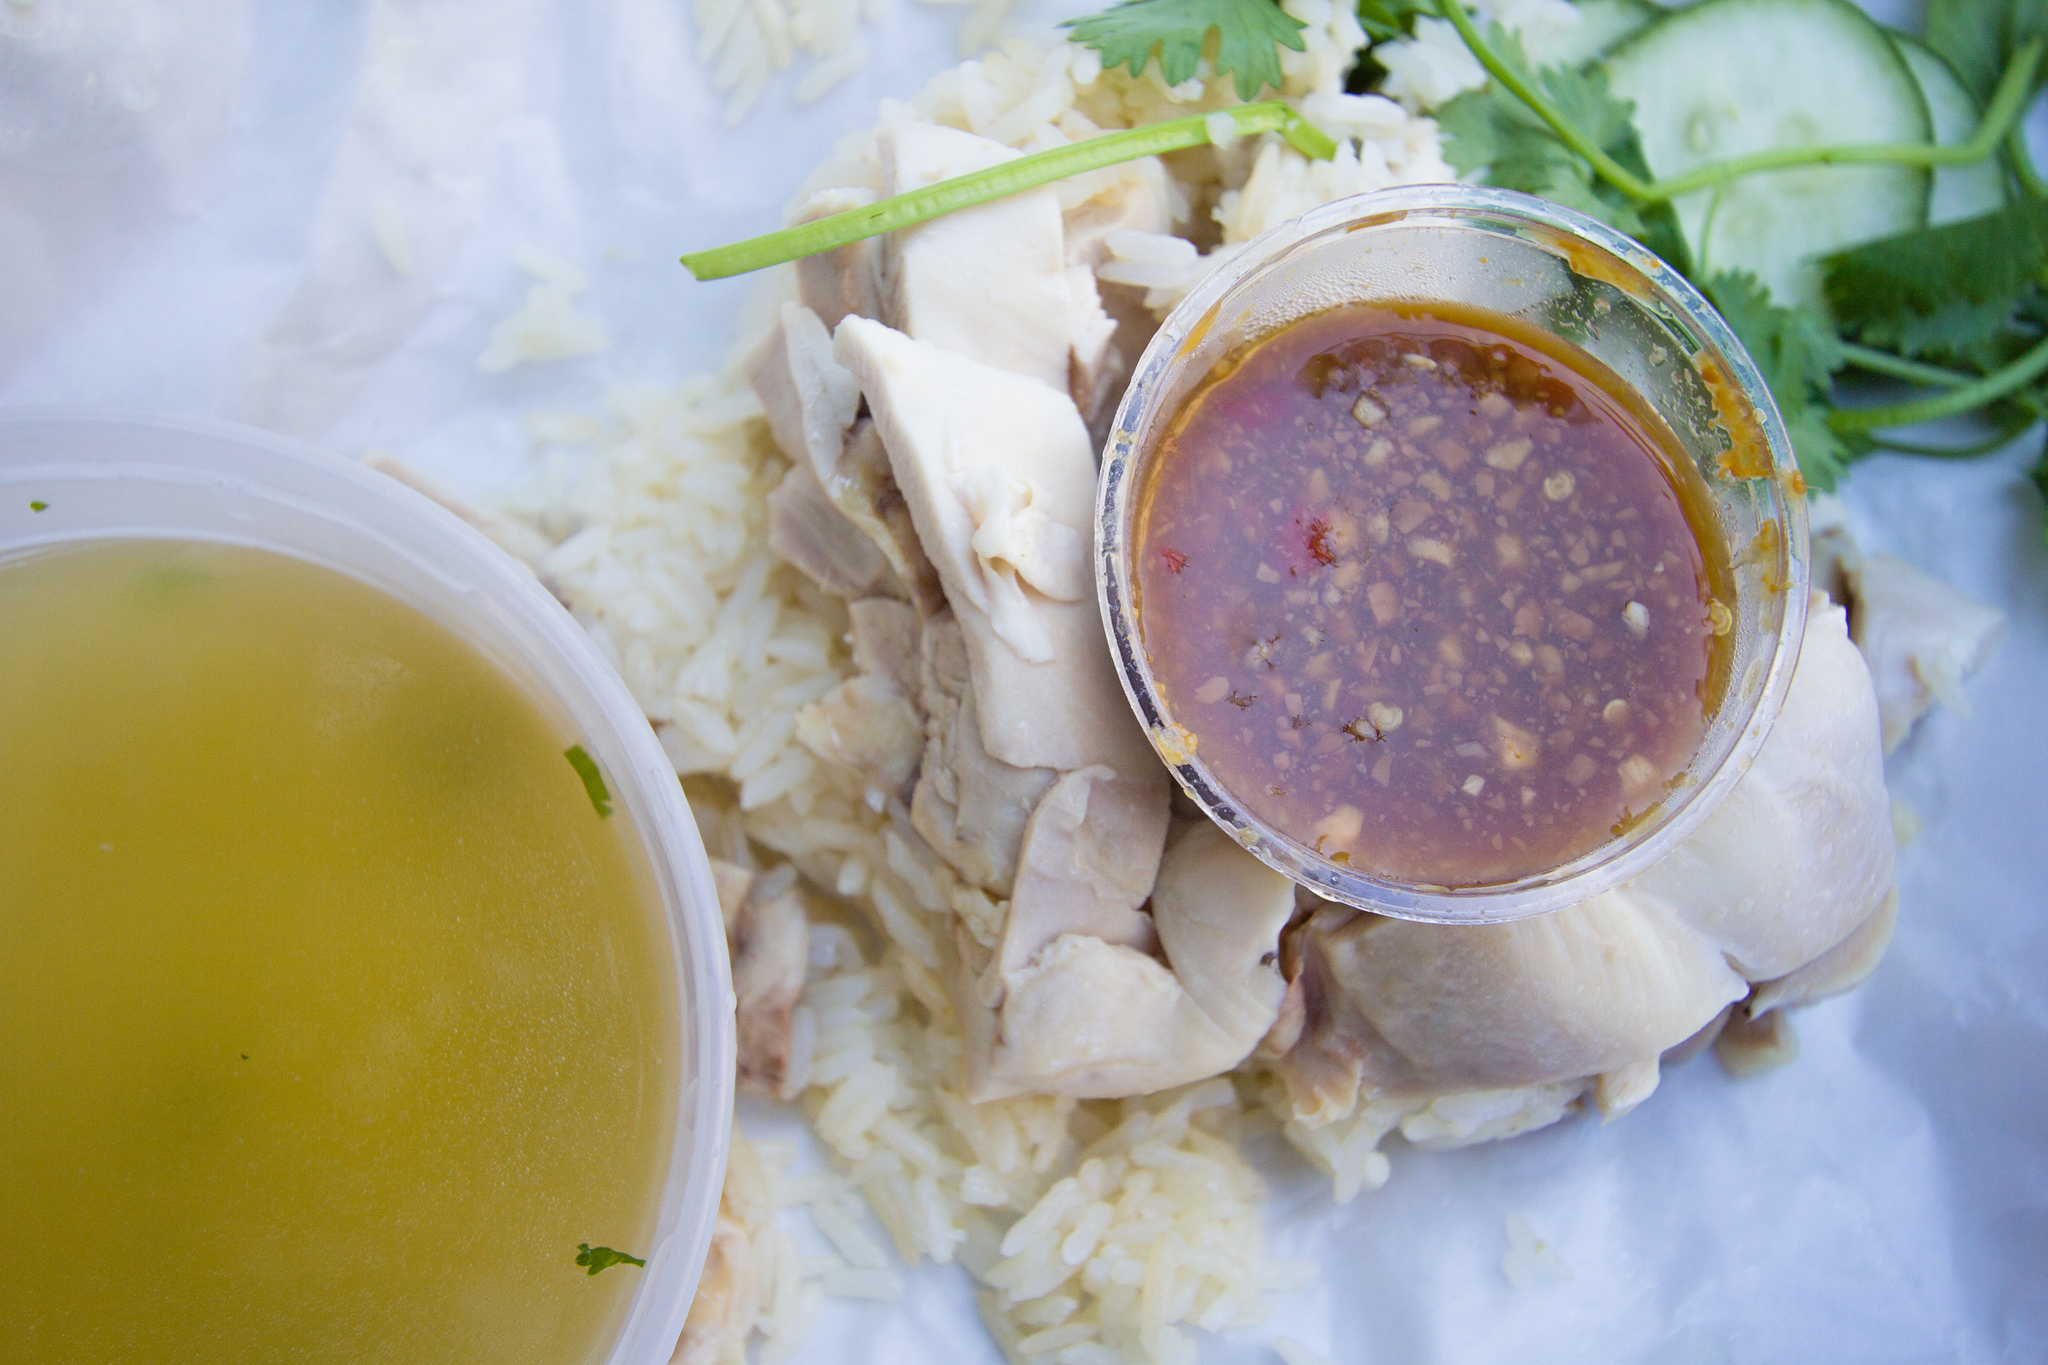 Nong's Khao Man Gai - Photo Credit: sstrieu on Flickr